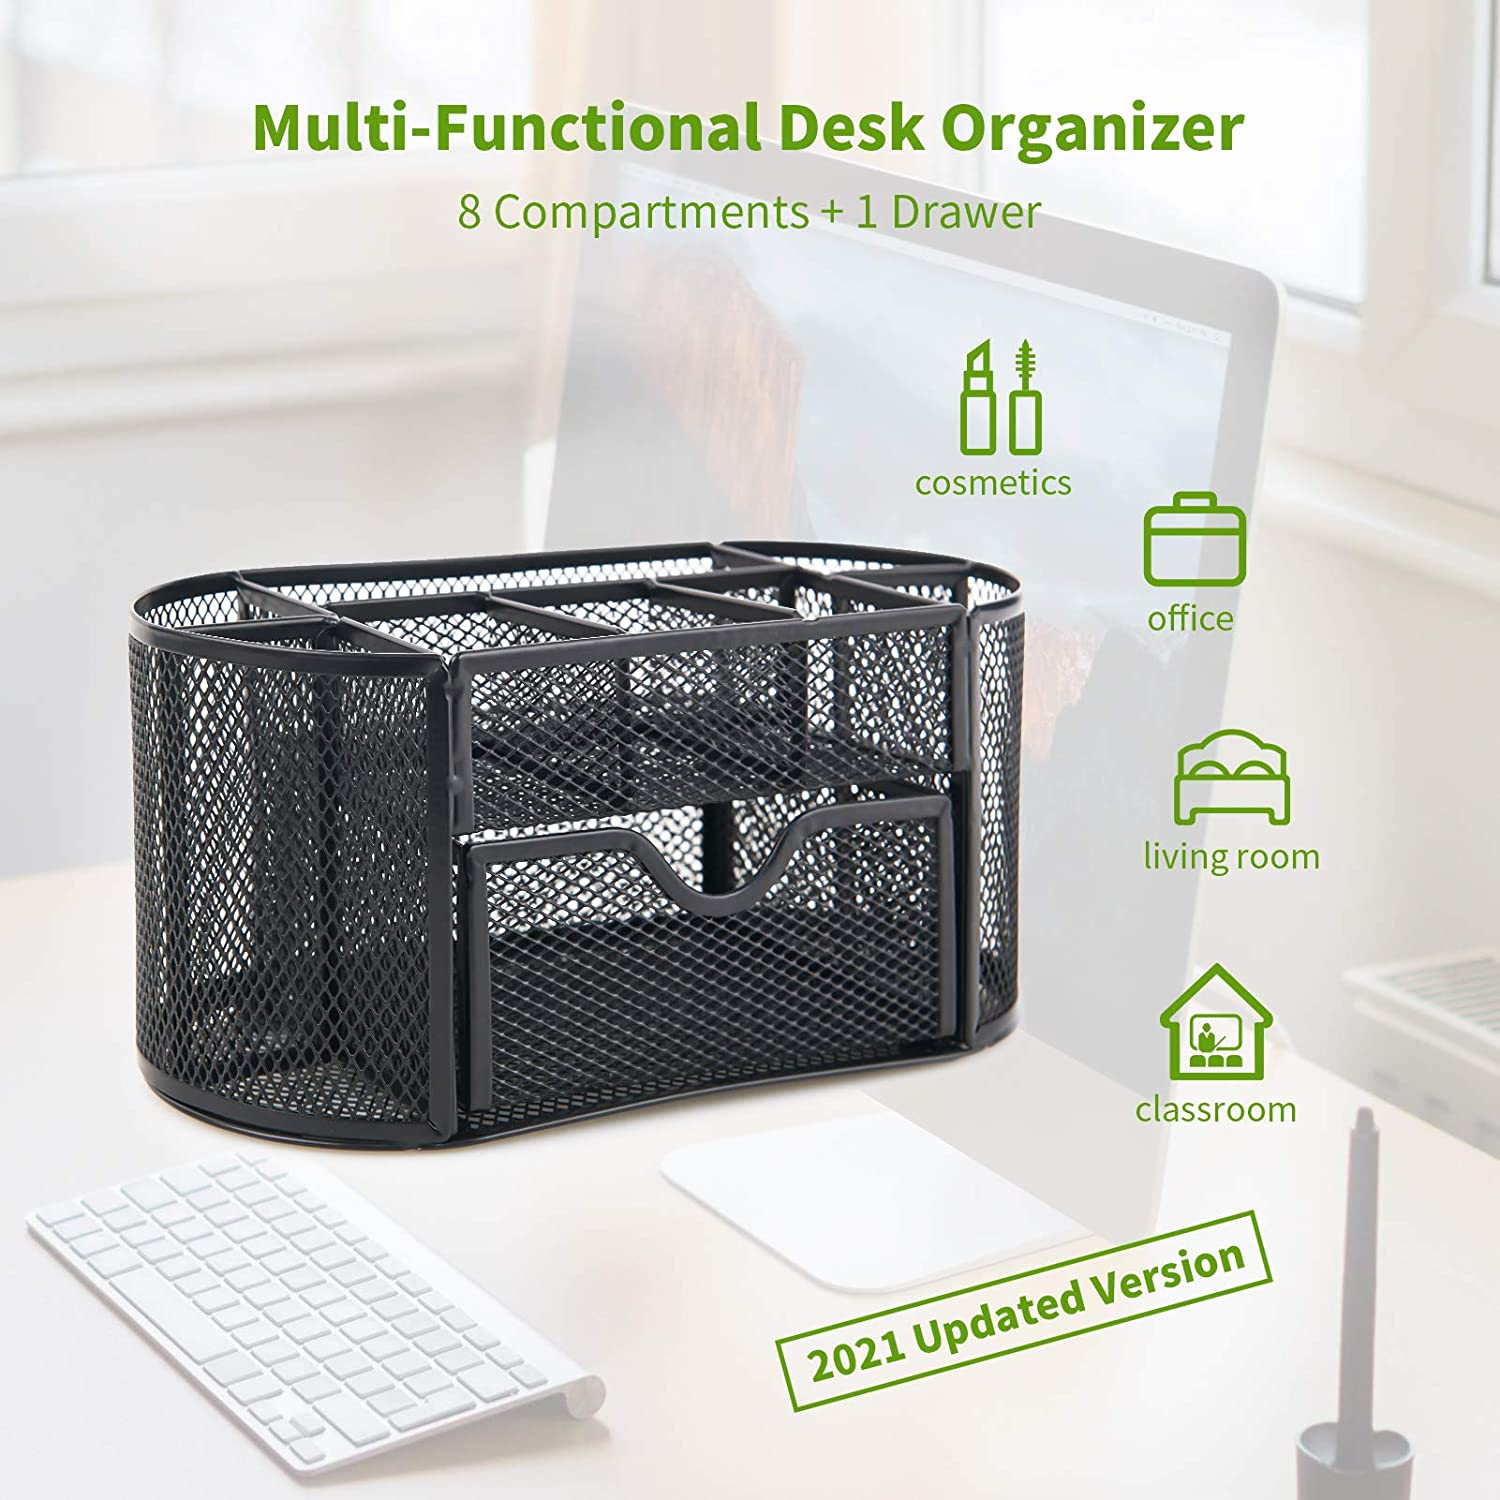 Mesh Desk Organizer Caddy Pen and Pencil Holder For Desk Office Supplies Desk Organizer and Accessories with 9 Compartments and Drawer for School Office Desk Organization Storage Black